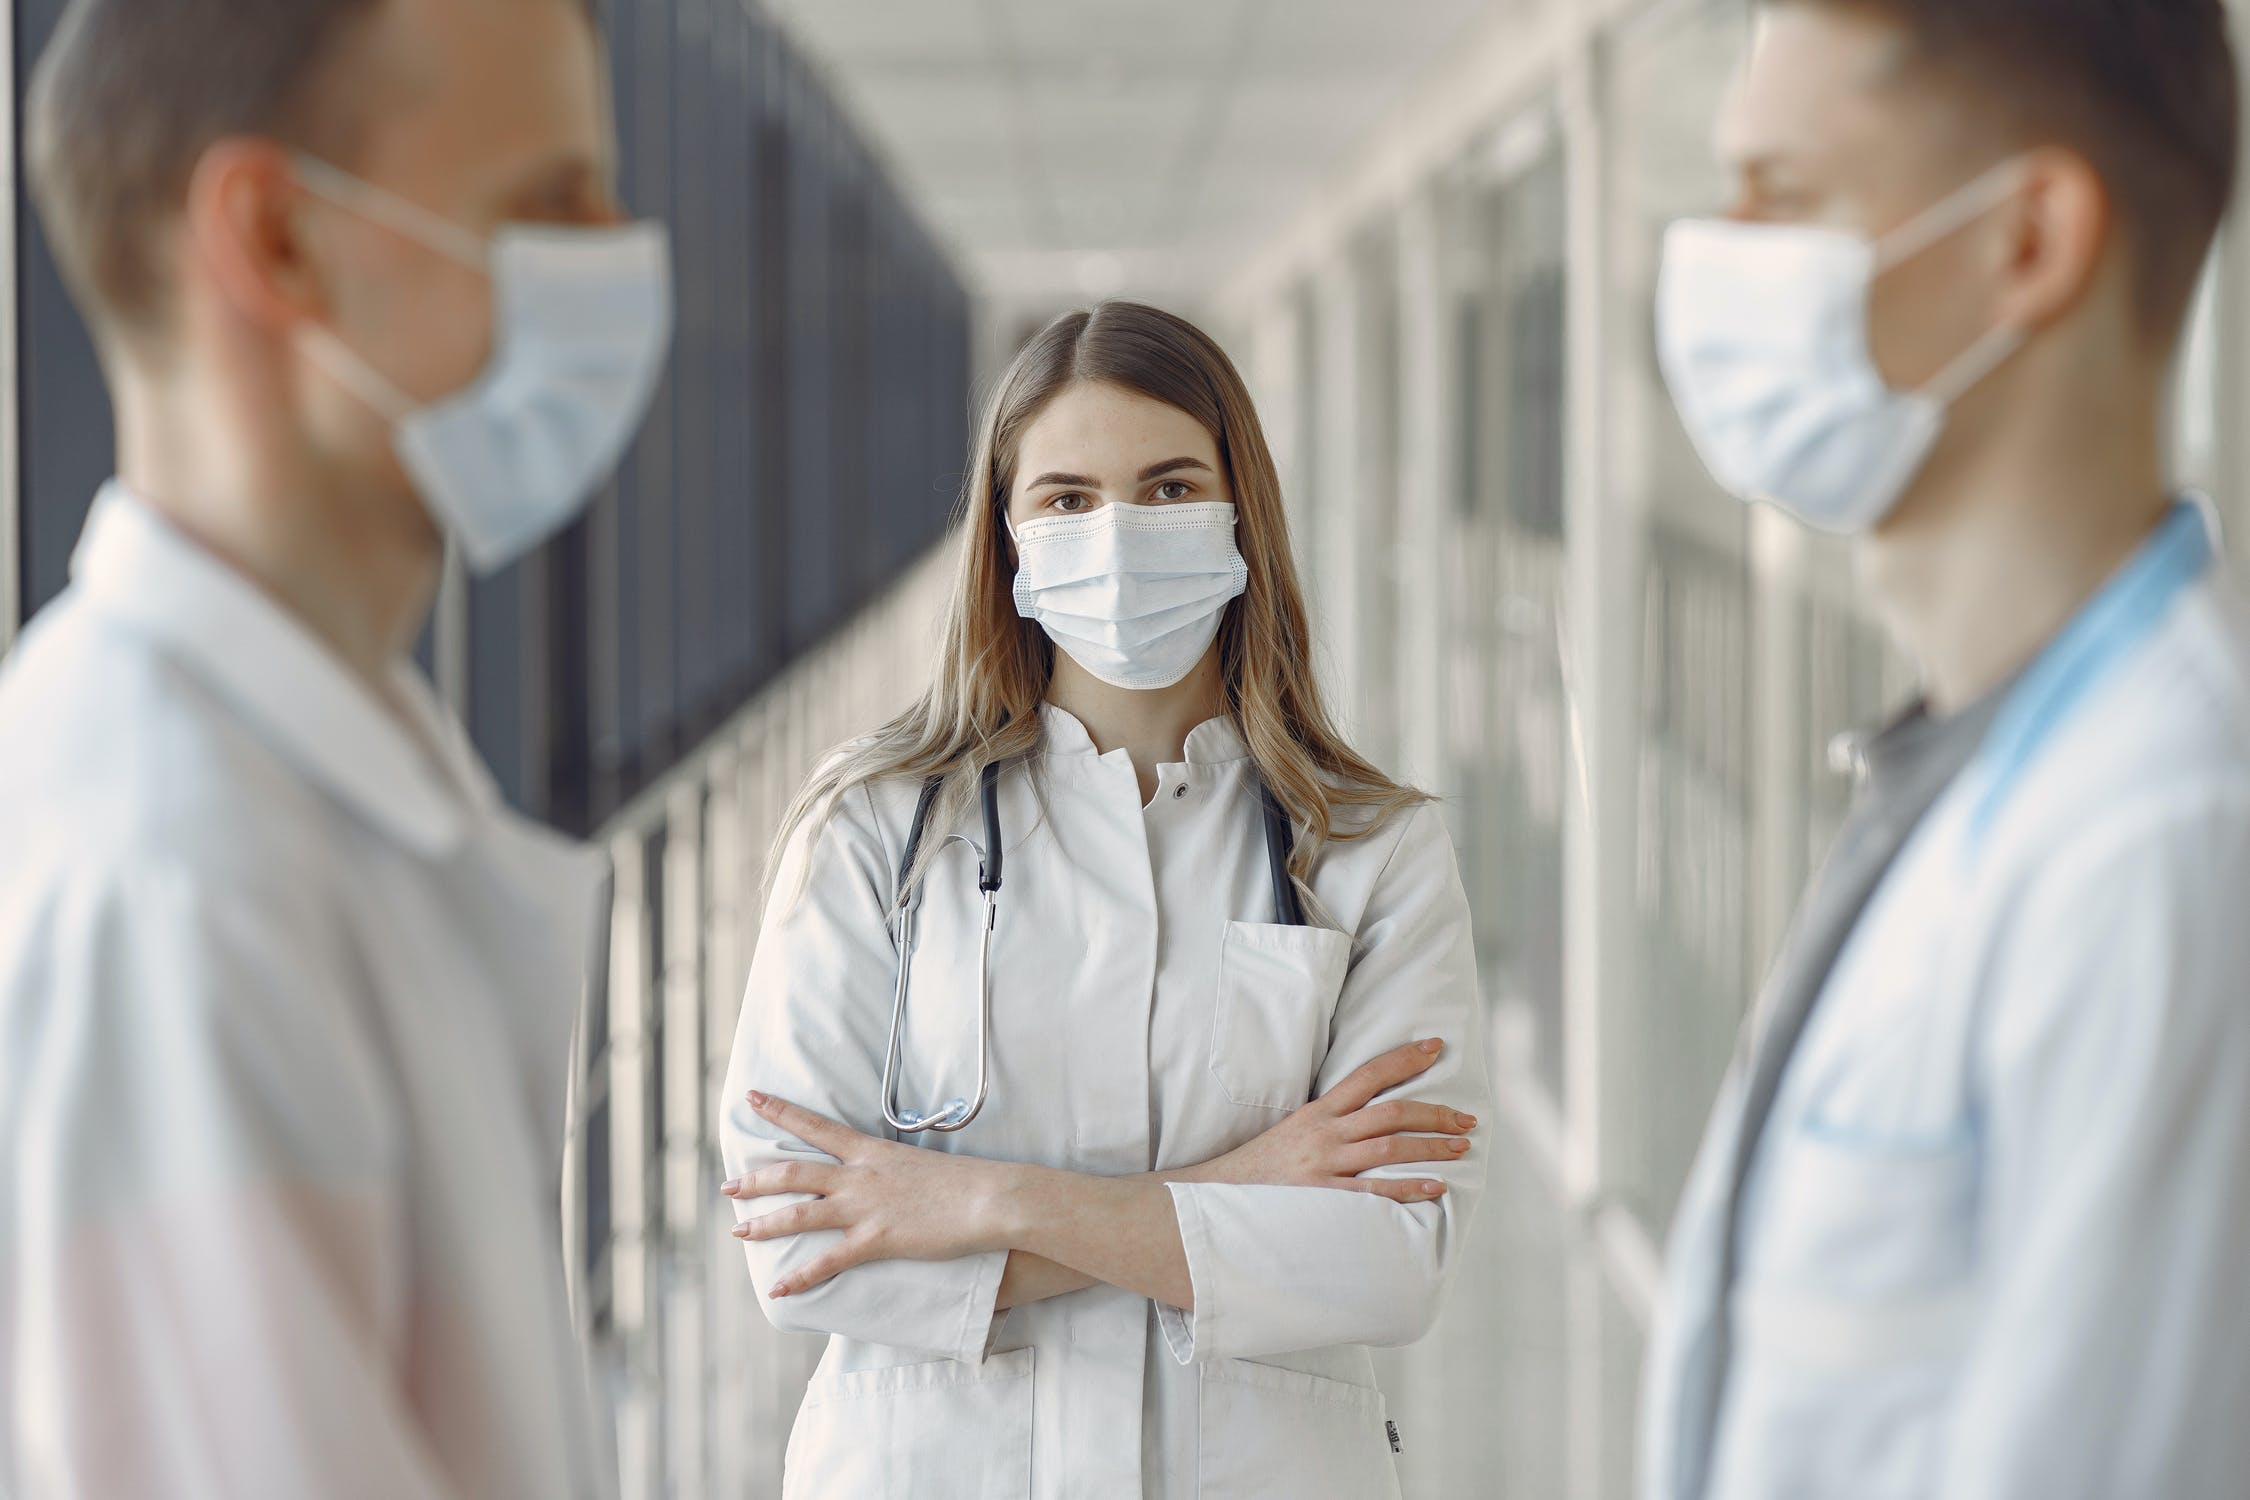 Three people in lab coats wearing face masks talking. Photo by pexels user Gustavo Fring. Photo used courtesy of Pexels.com.